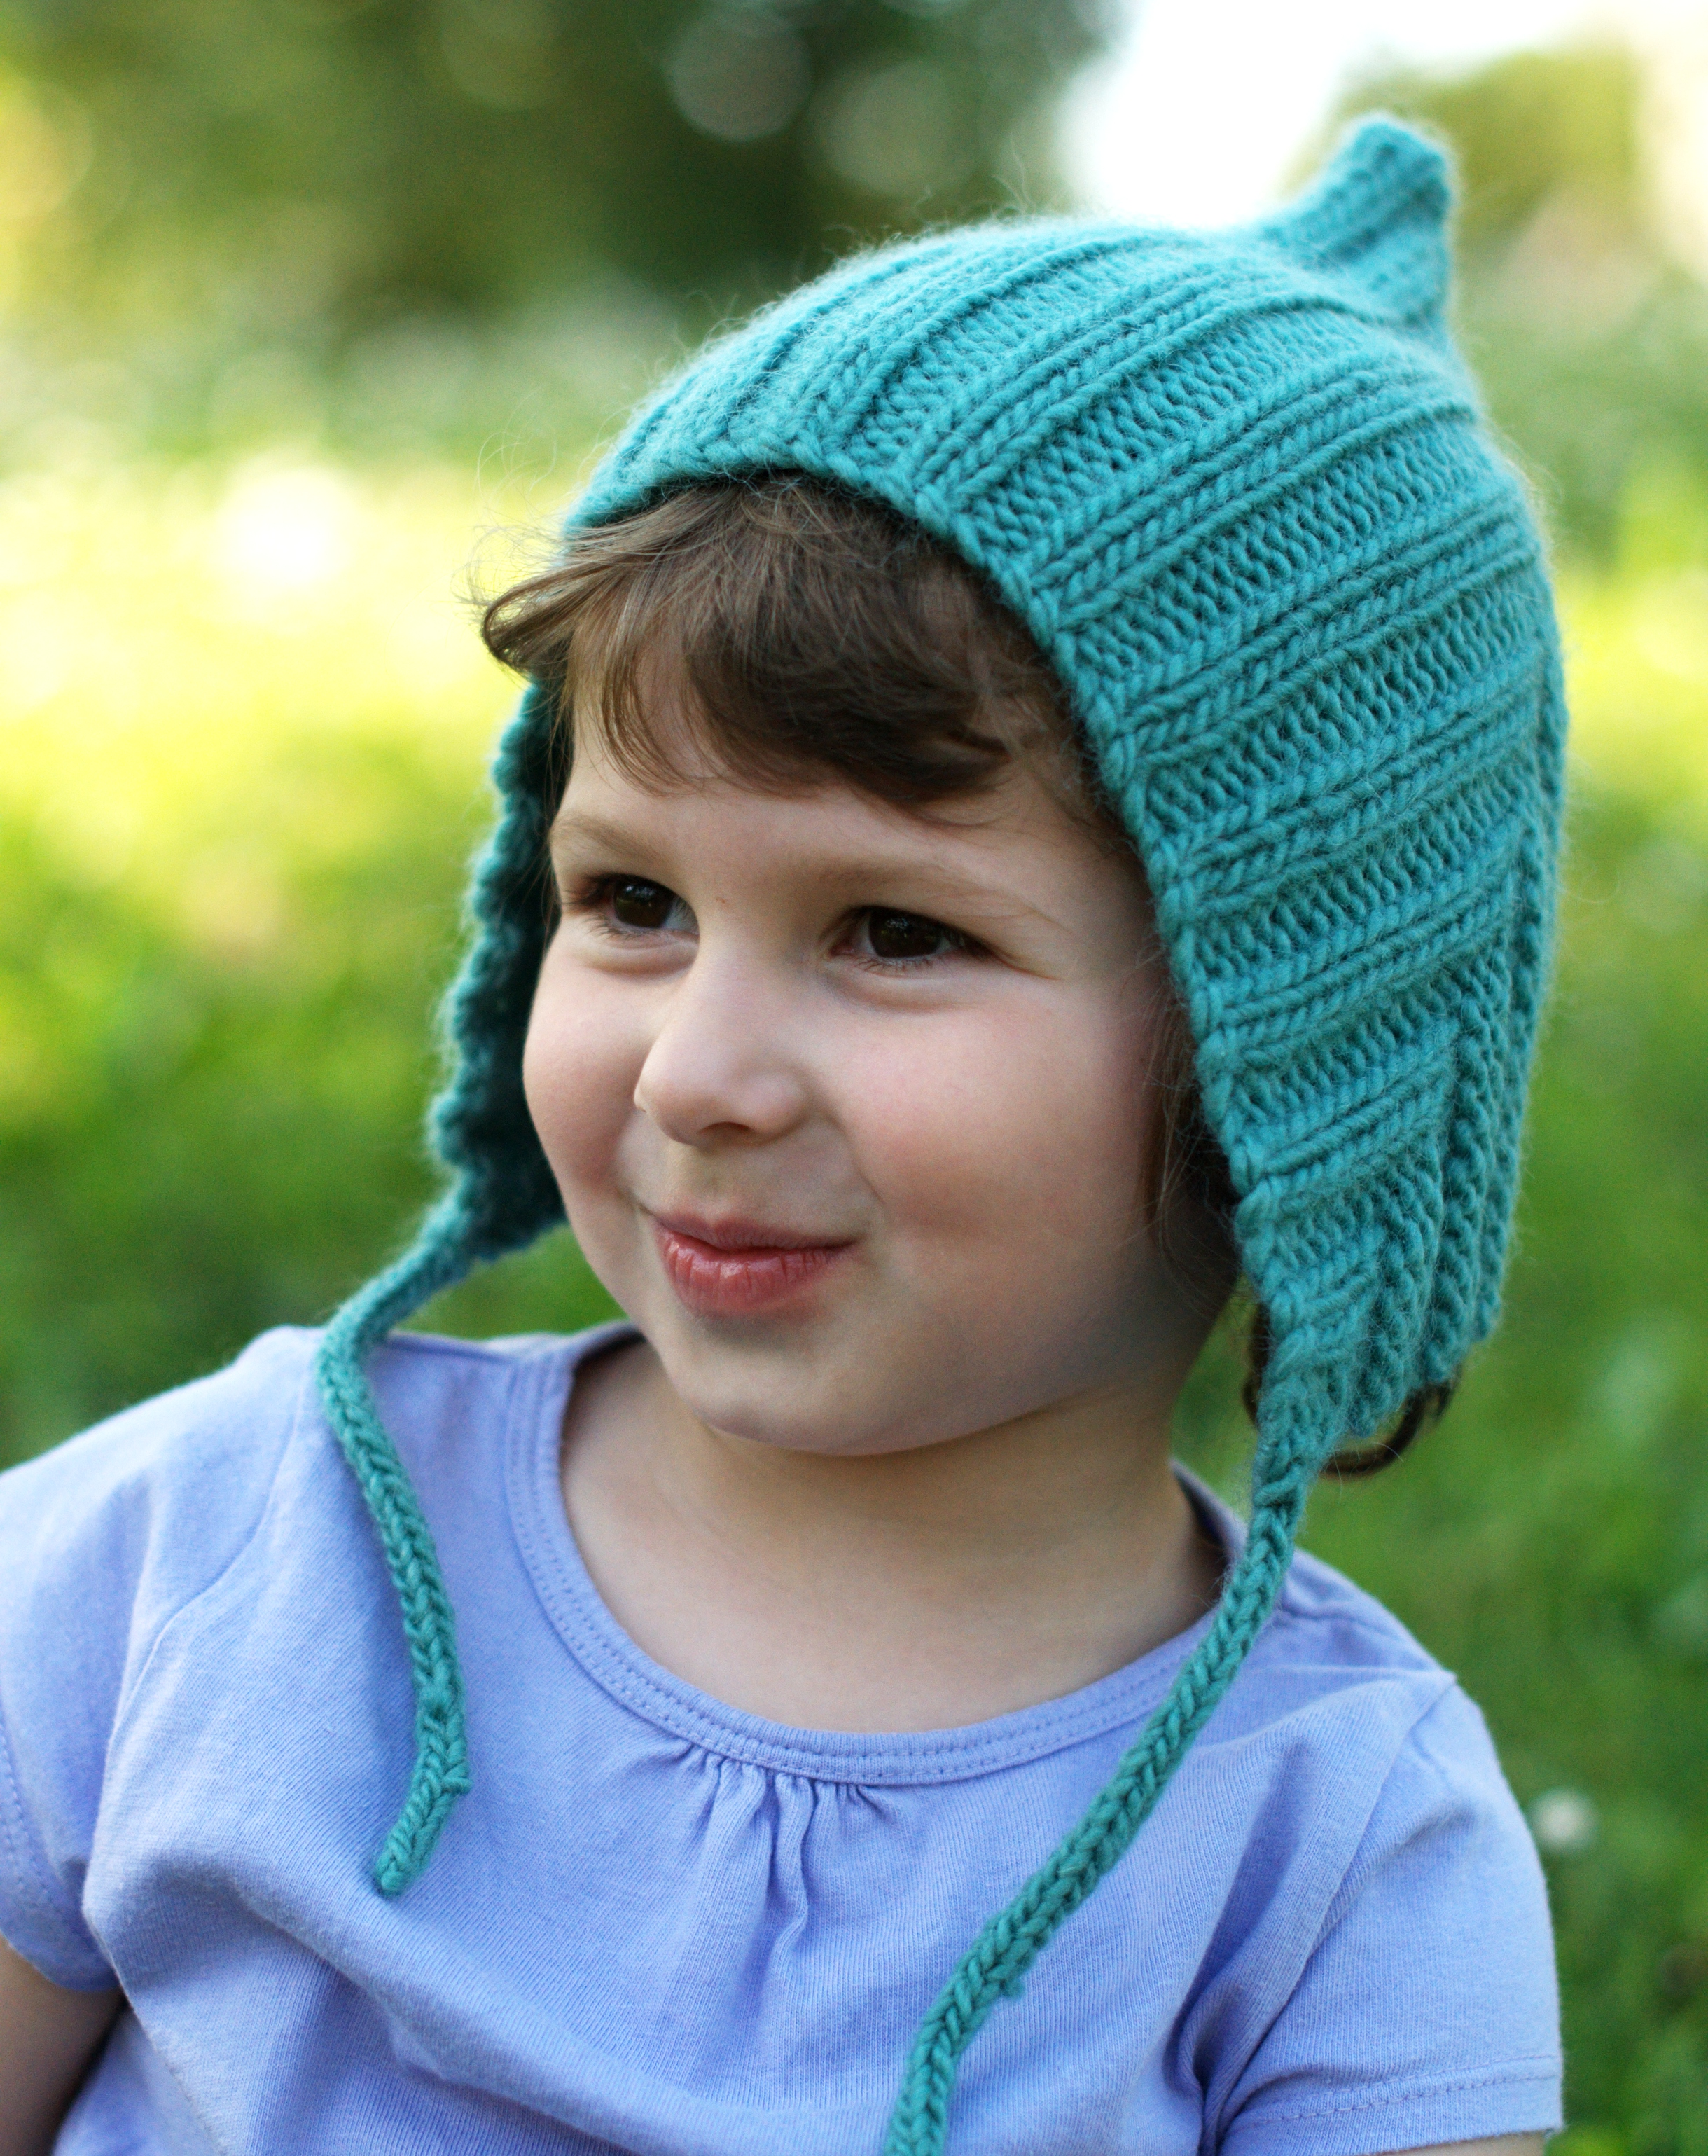 Pixetta childs bonnet knitting pattern